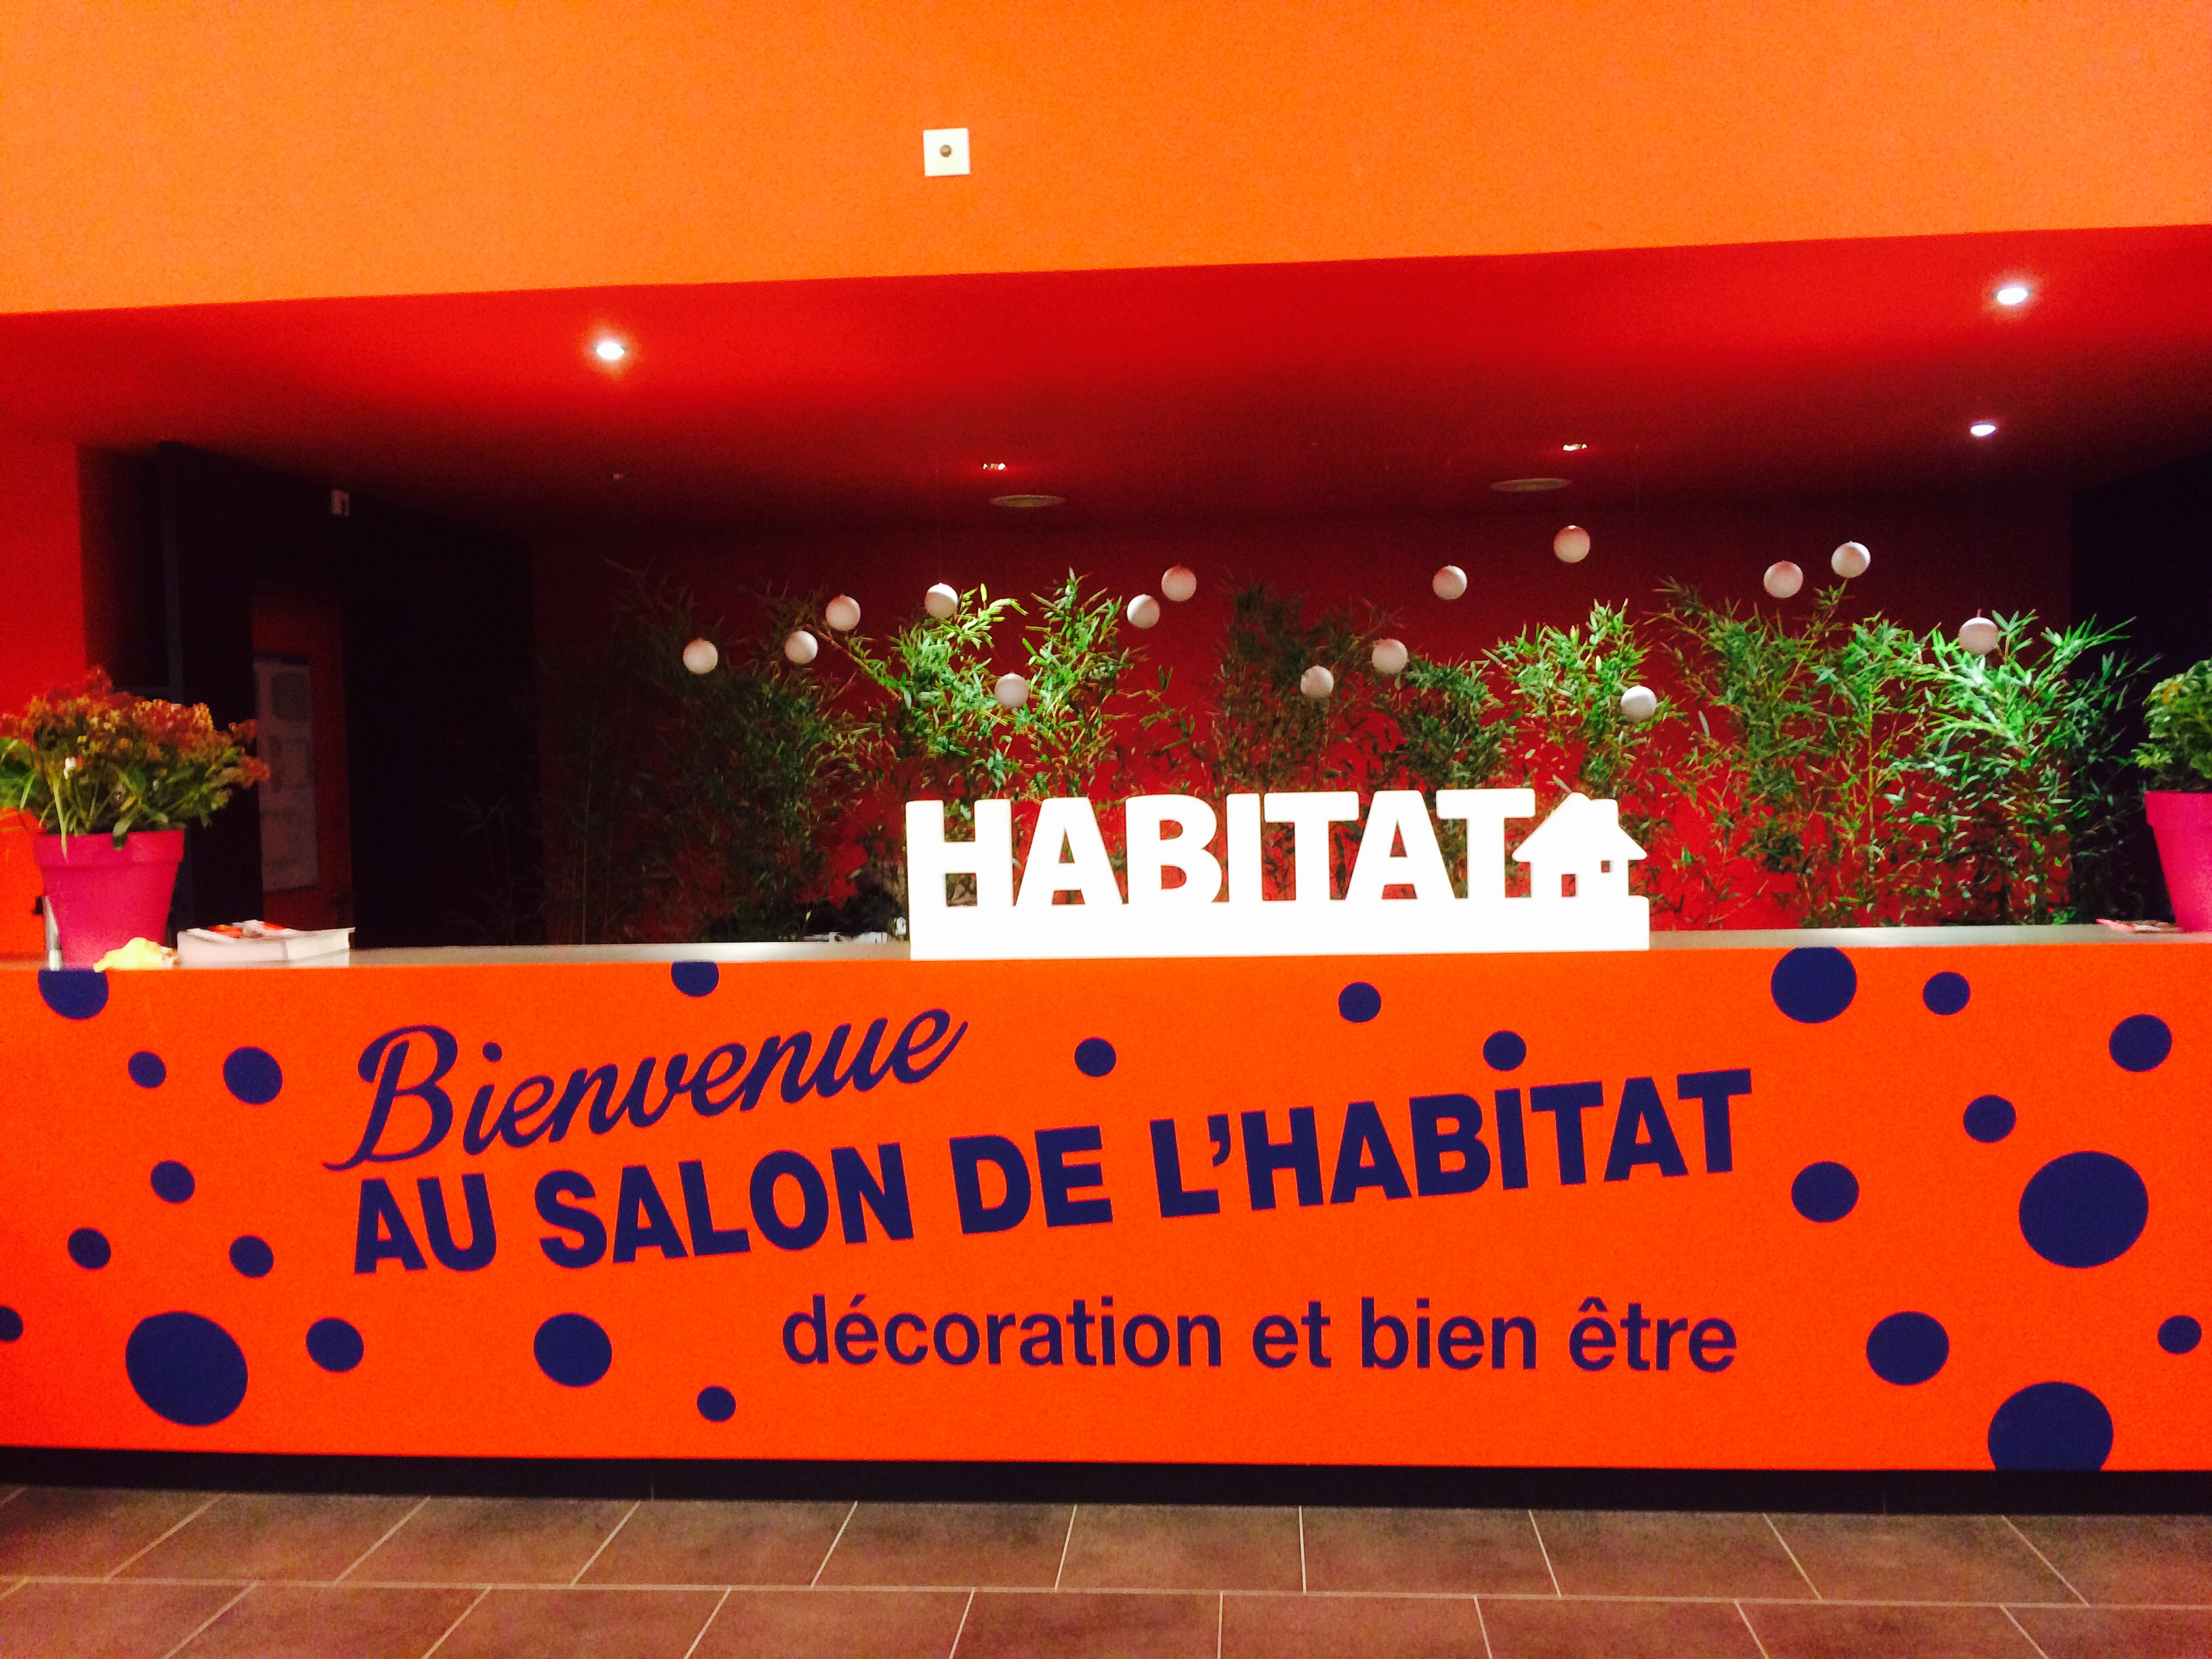 Activ pr sent au salon de l 39 habitat d coration et bien for Decoration habitat